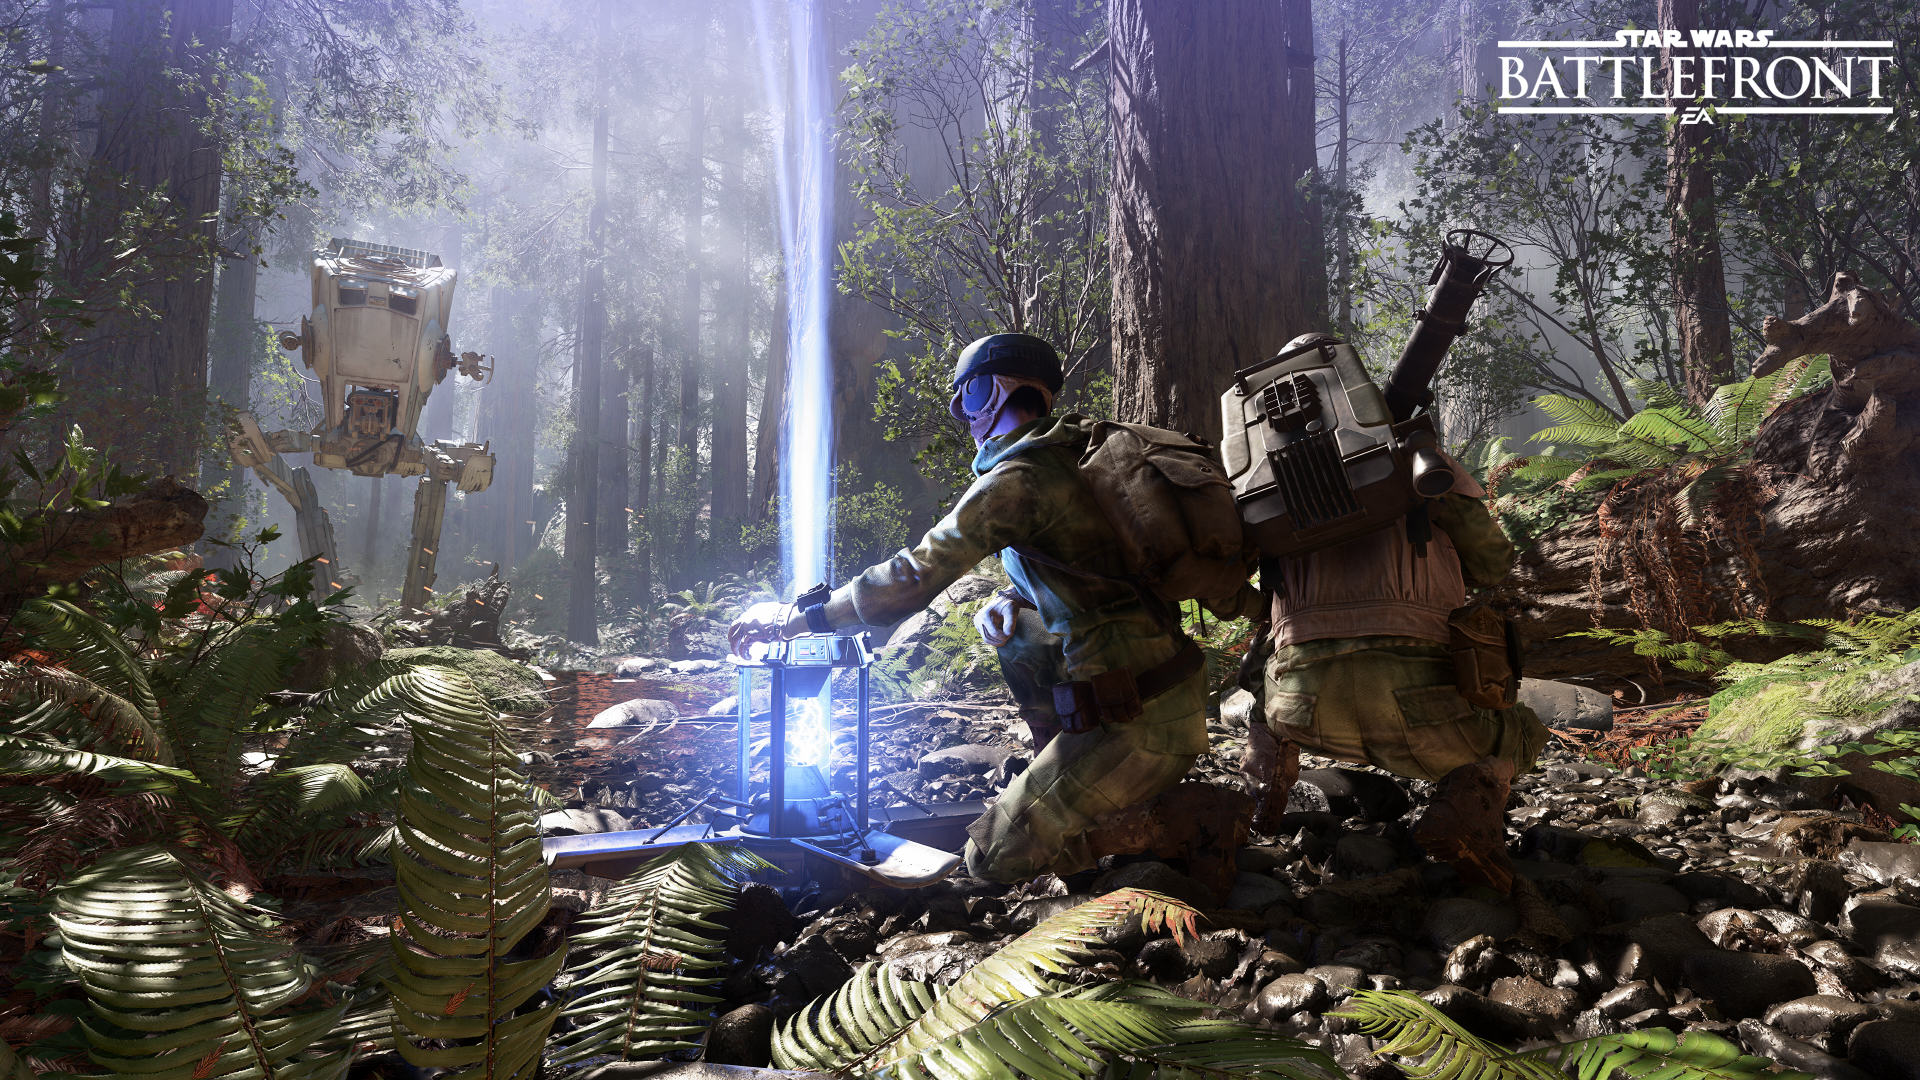 Star Wars: Battlefront Looks Stunning In These Desktop Backgrounds And Images UNILAD N1wyaFV Imgur3